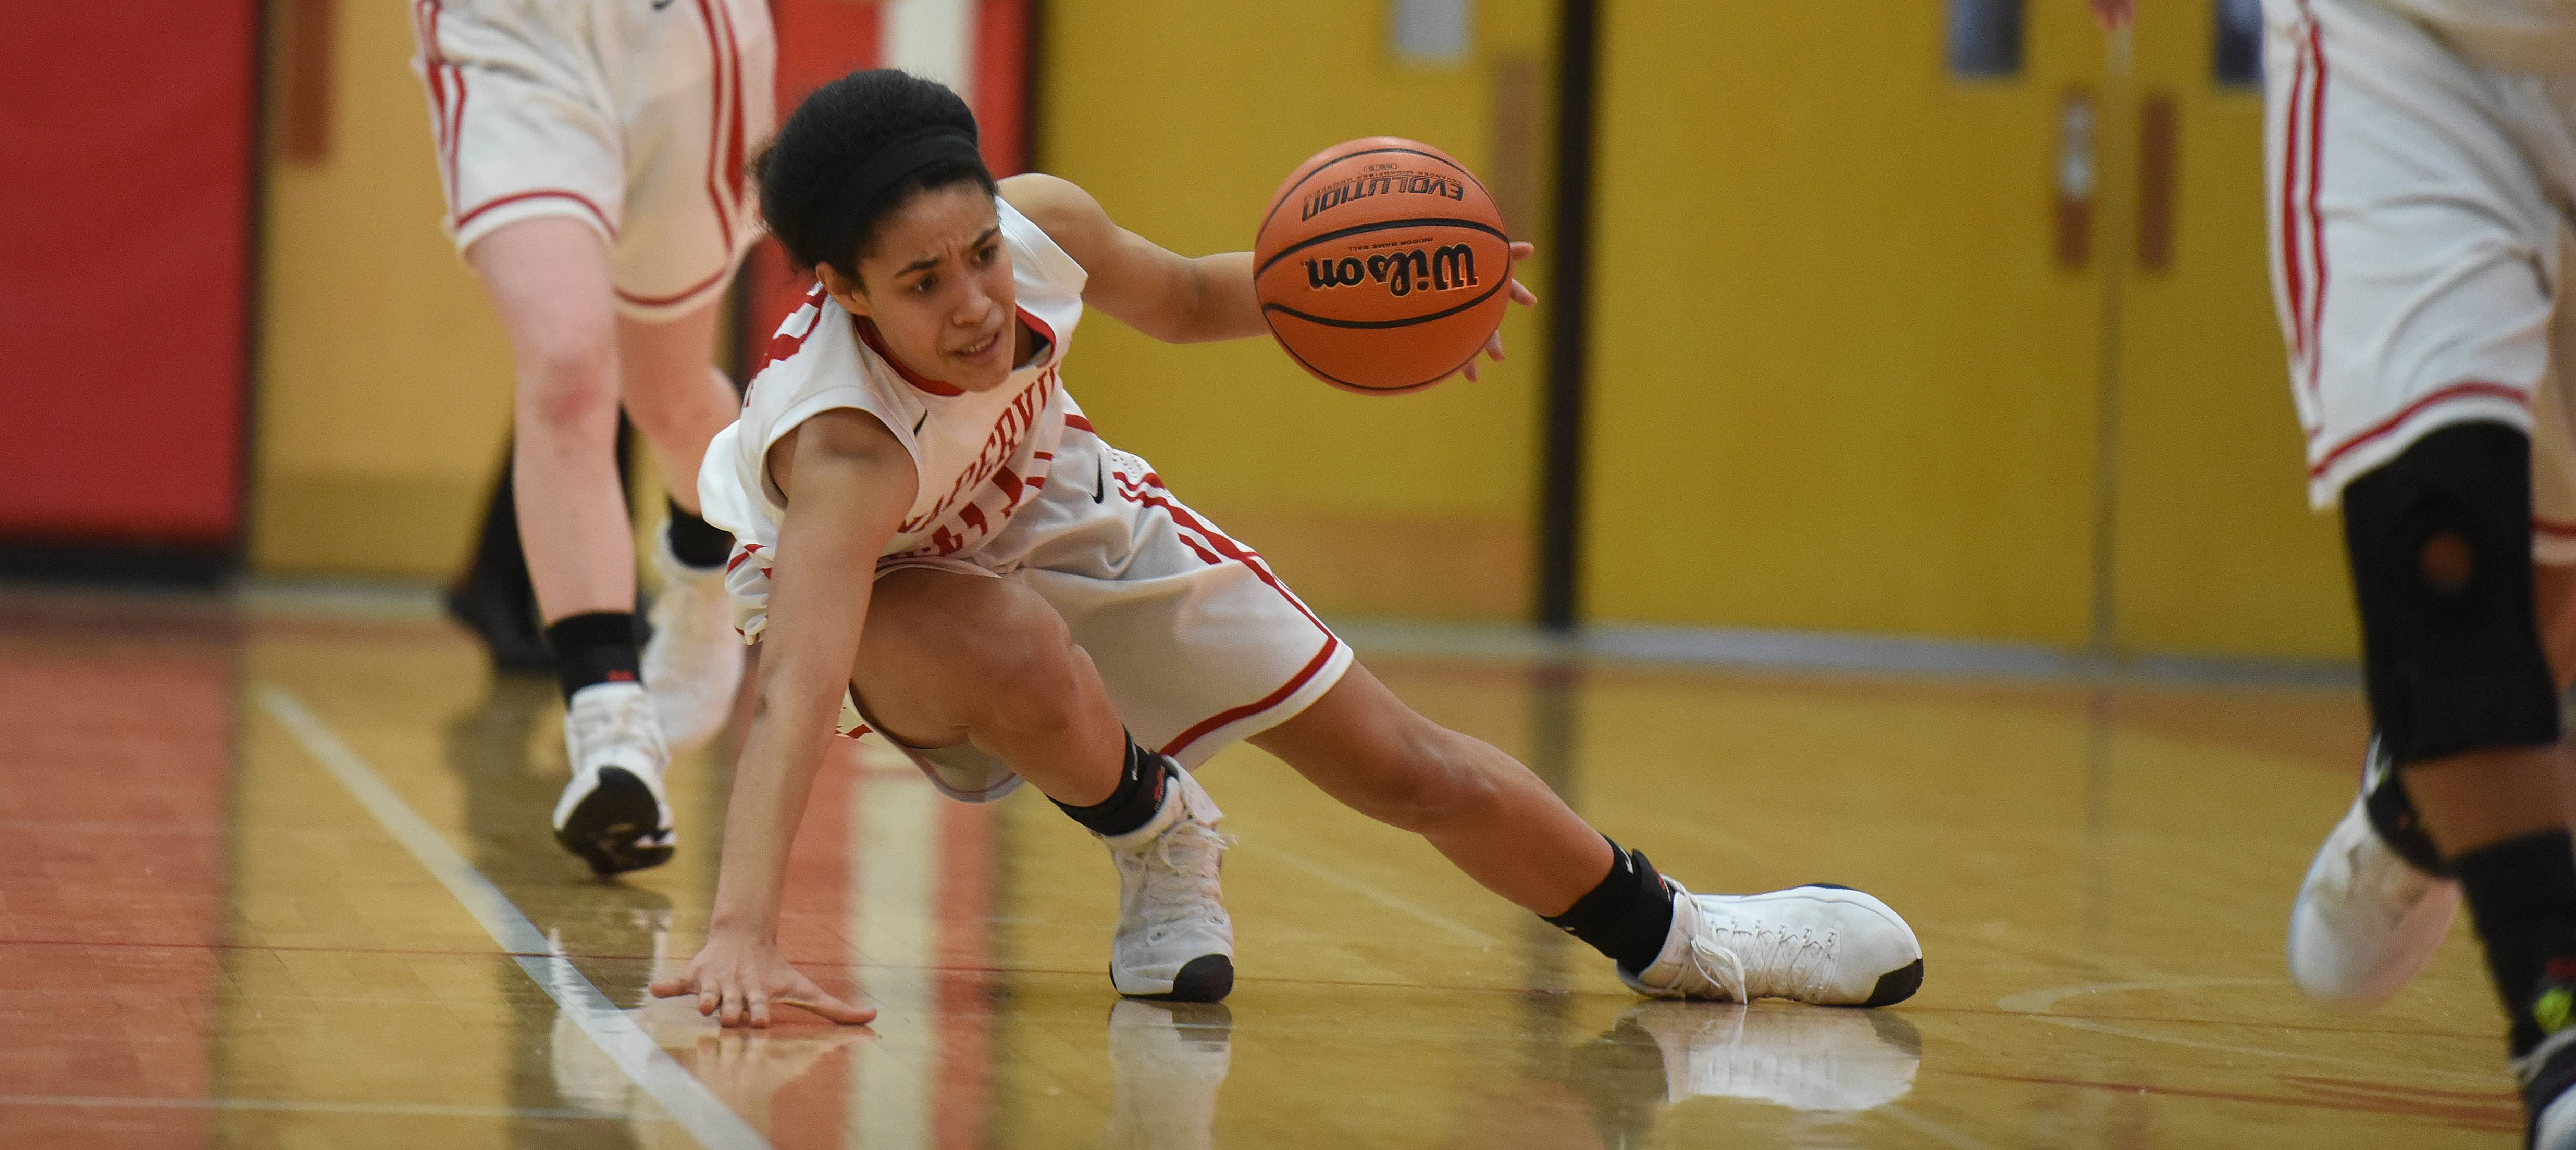 Naperville Central's Mia Lakstigala drives the ball during the Metea Valley at Naperville Central girls basketball game Thursday.